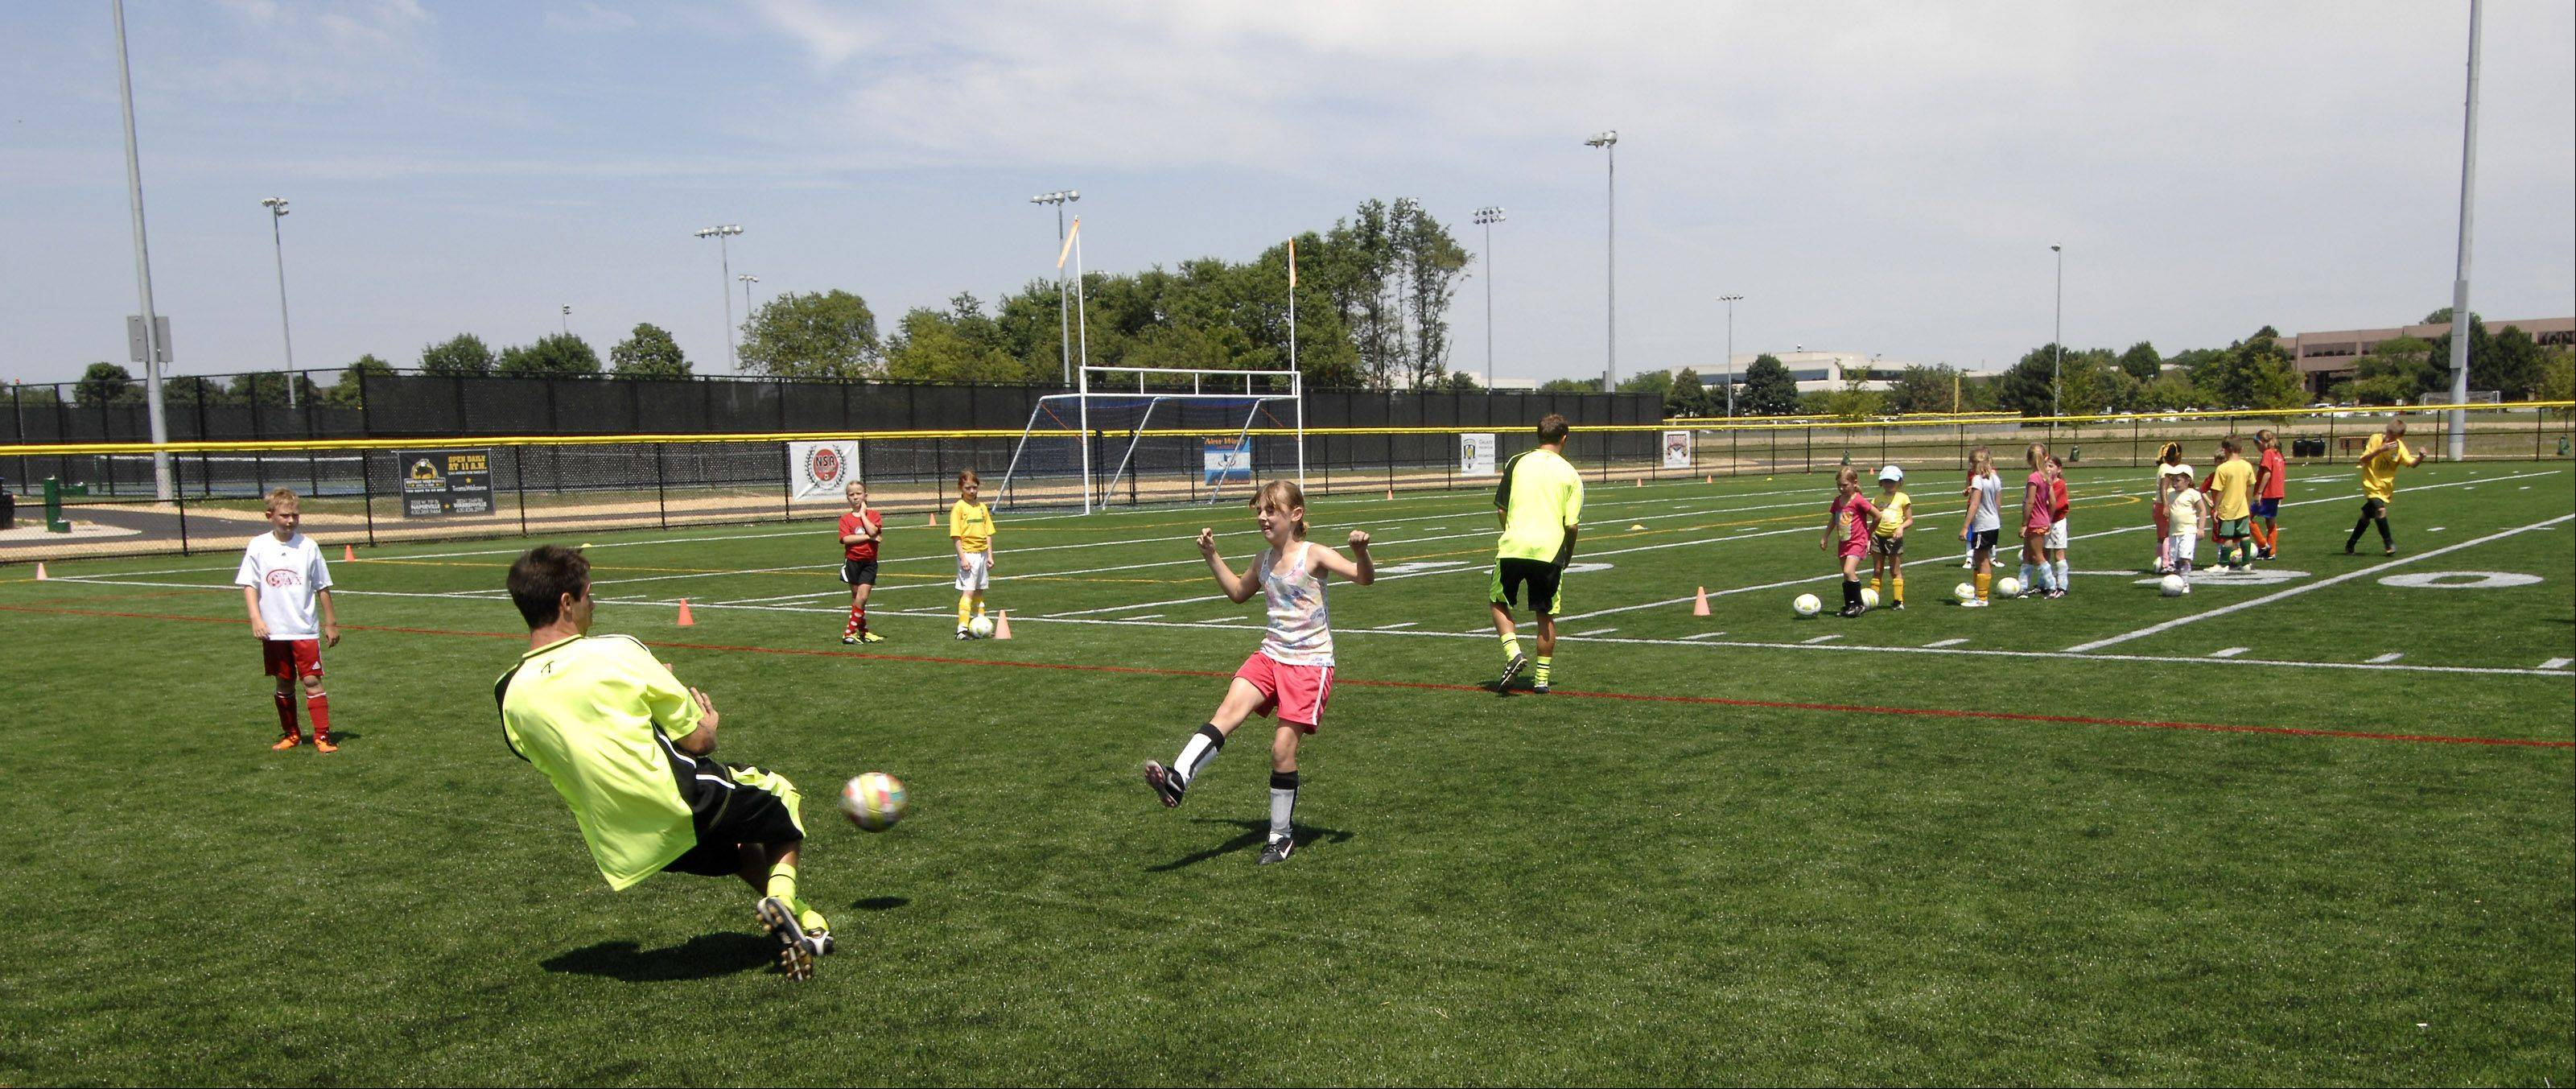 Soccer can now be practiced and played on artificial turf at the newly refurbished Nike Sports Complex on Mill Street just south of Diehl Road in Naperville.